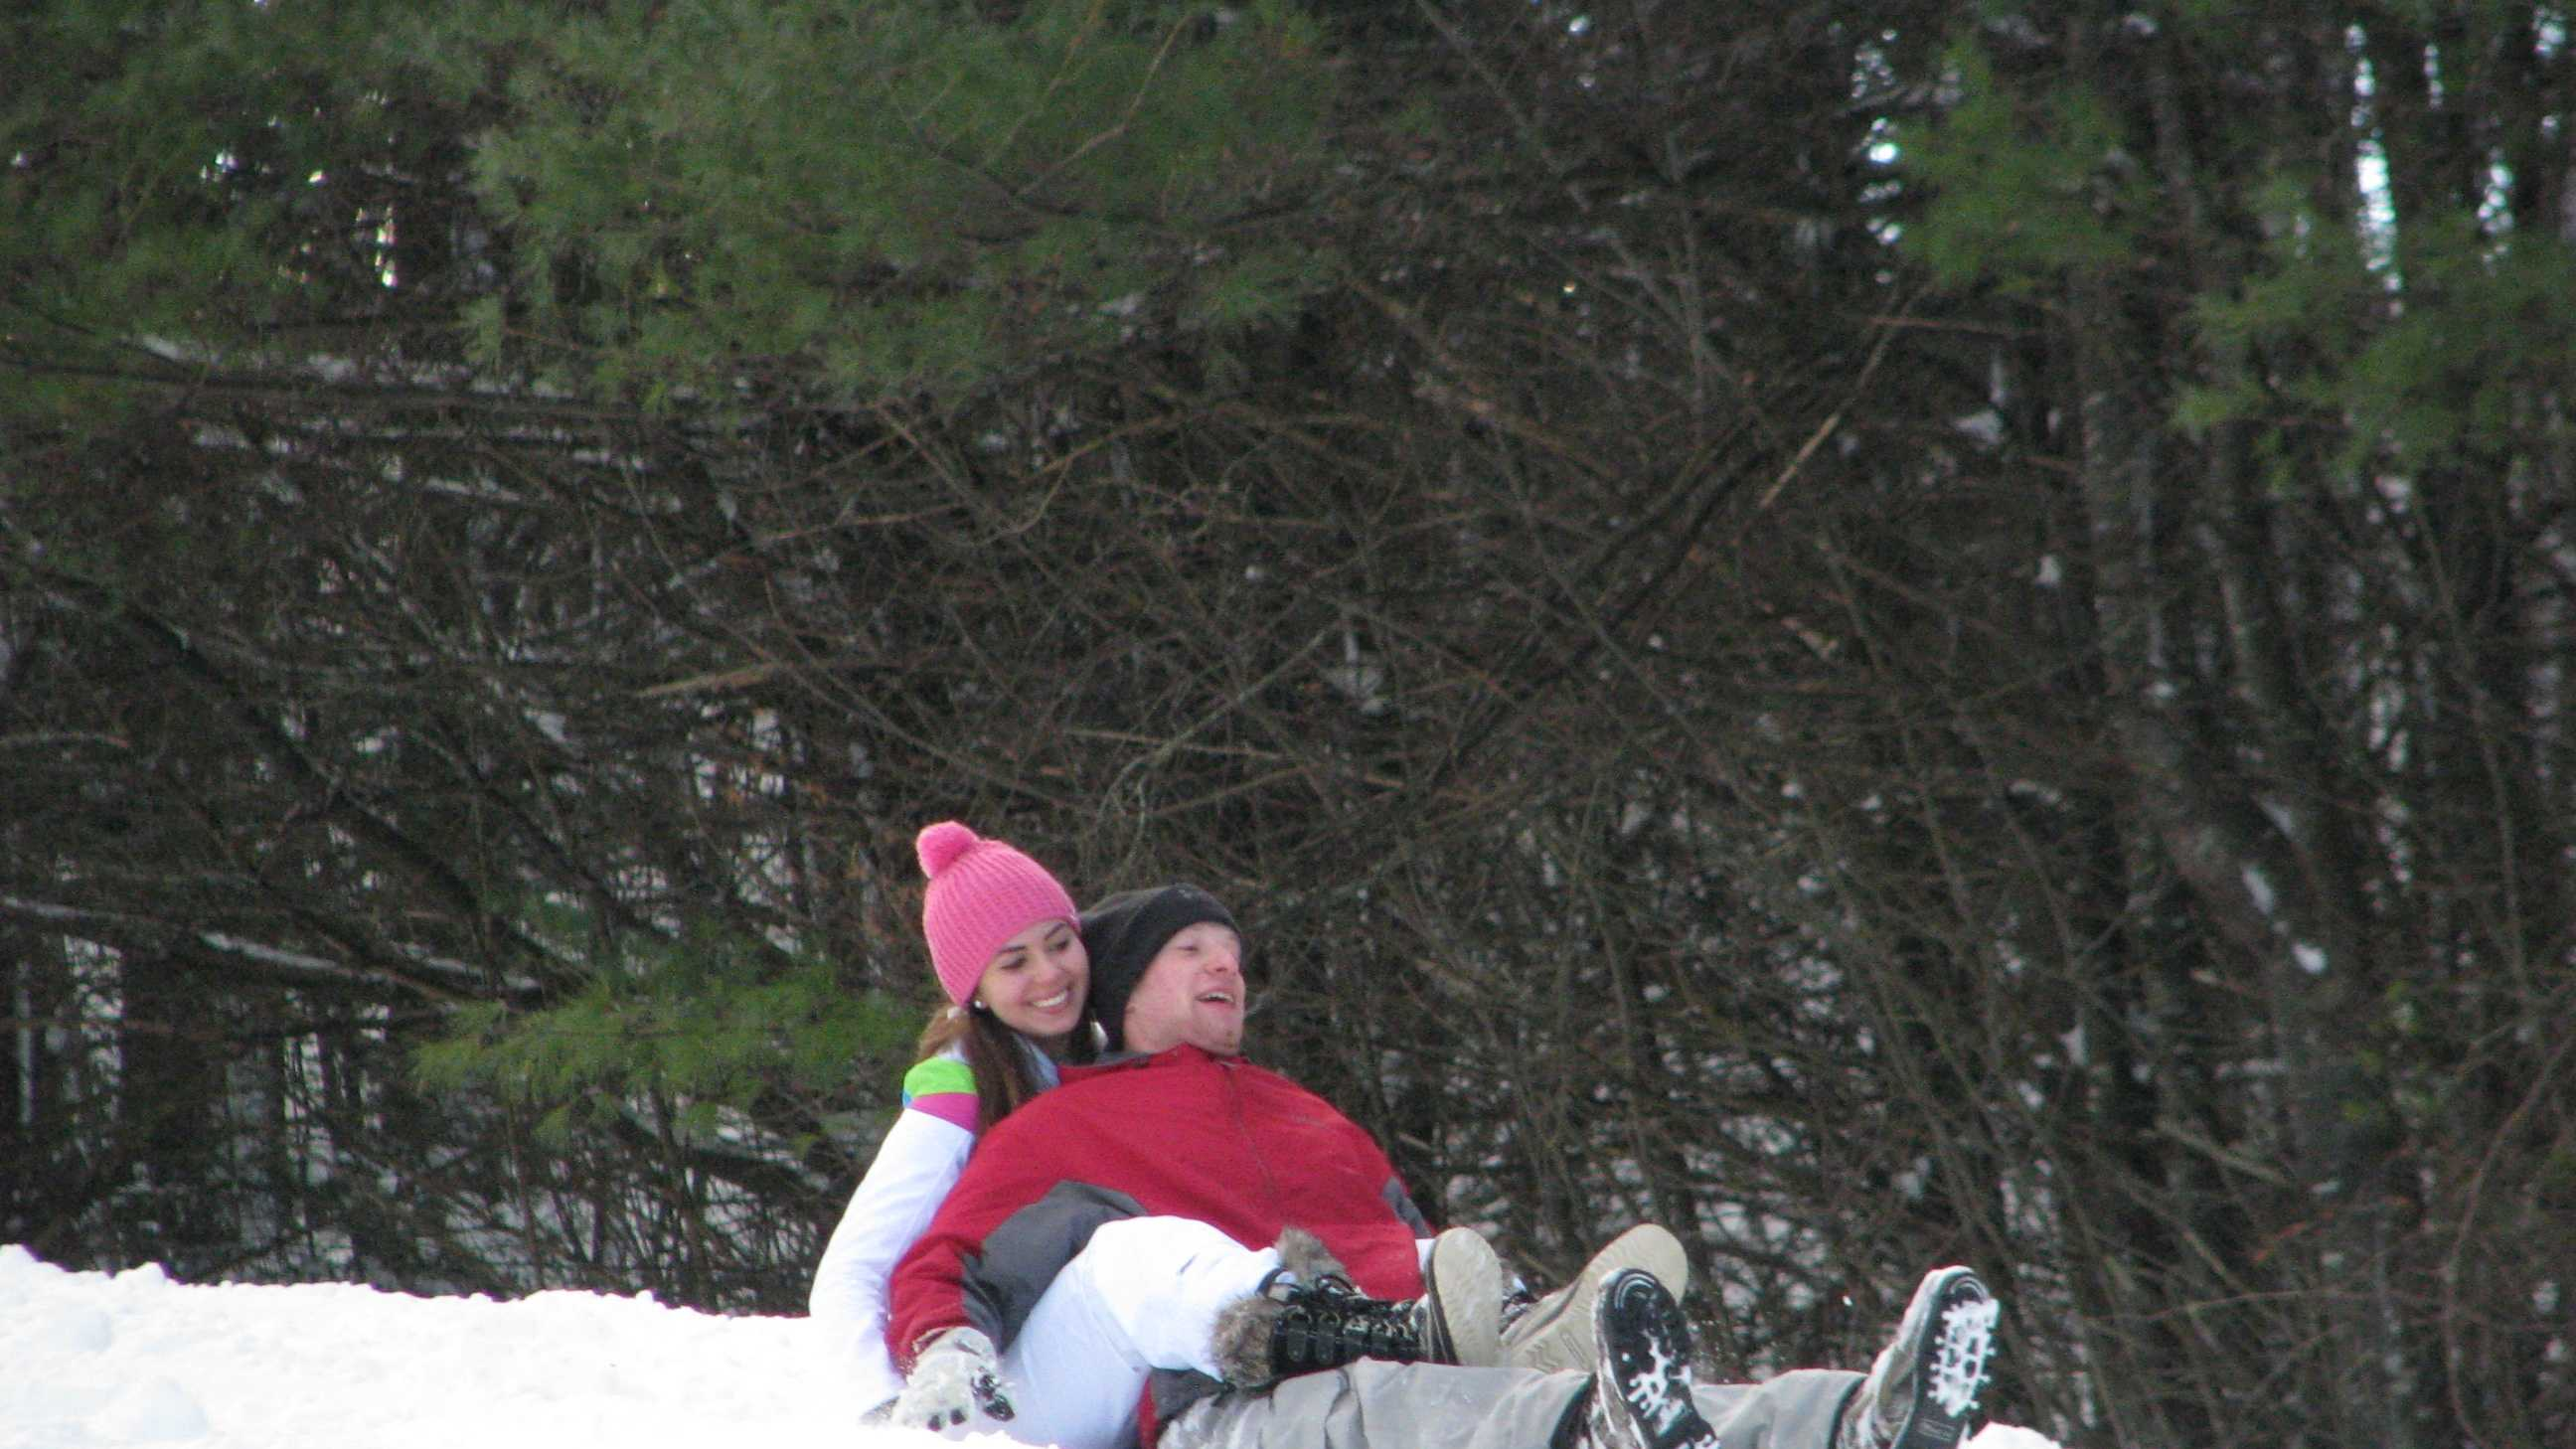 Sledders took to the fresh snow at Gilford's town recreation department sledding hill of Route 11B Friday following a Nor'easter that dumped about a foot in the area.